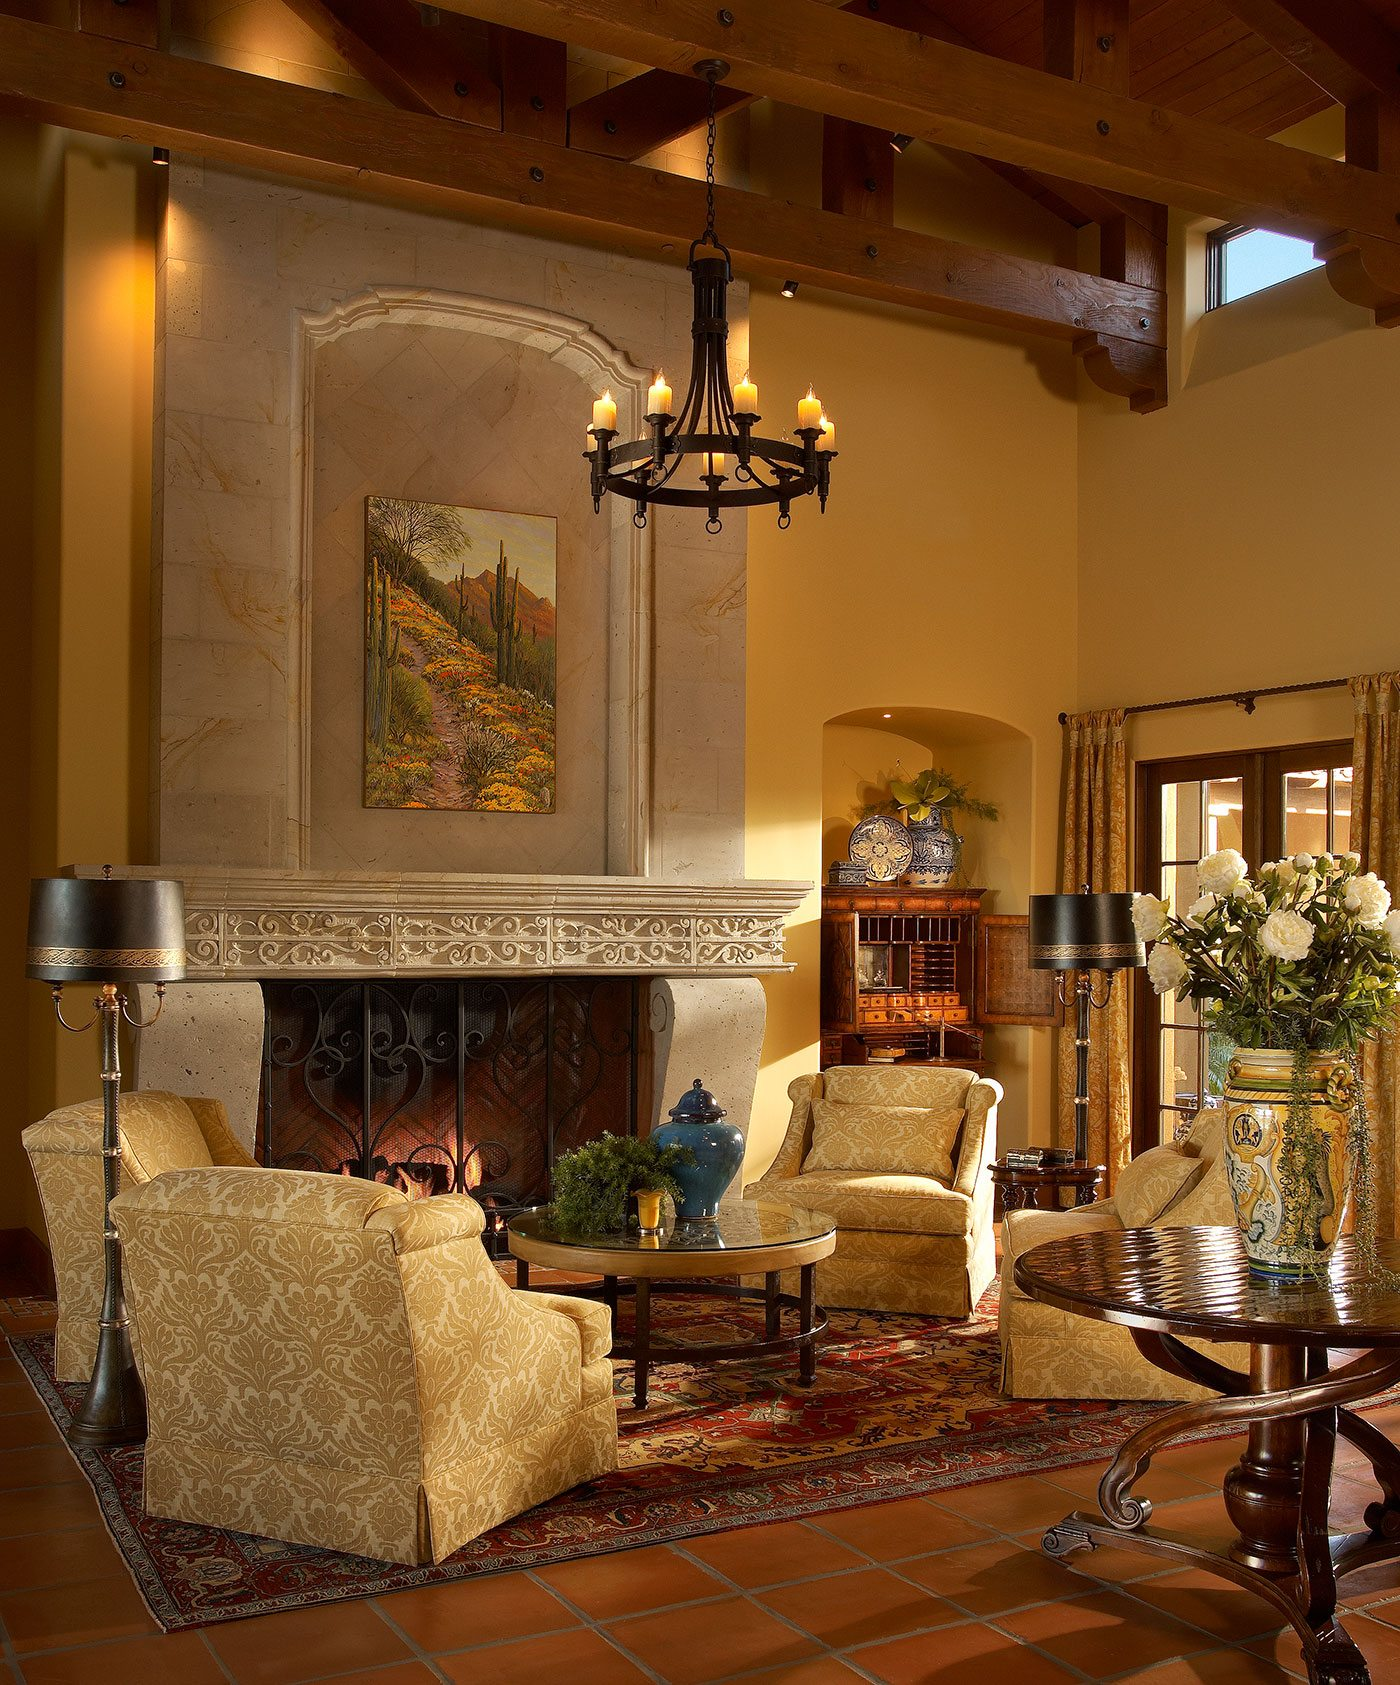 Santa Barbara Interior Design Janet Brooks Interior Design Firm